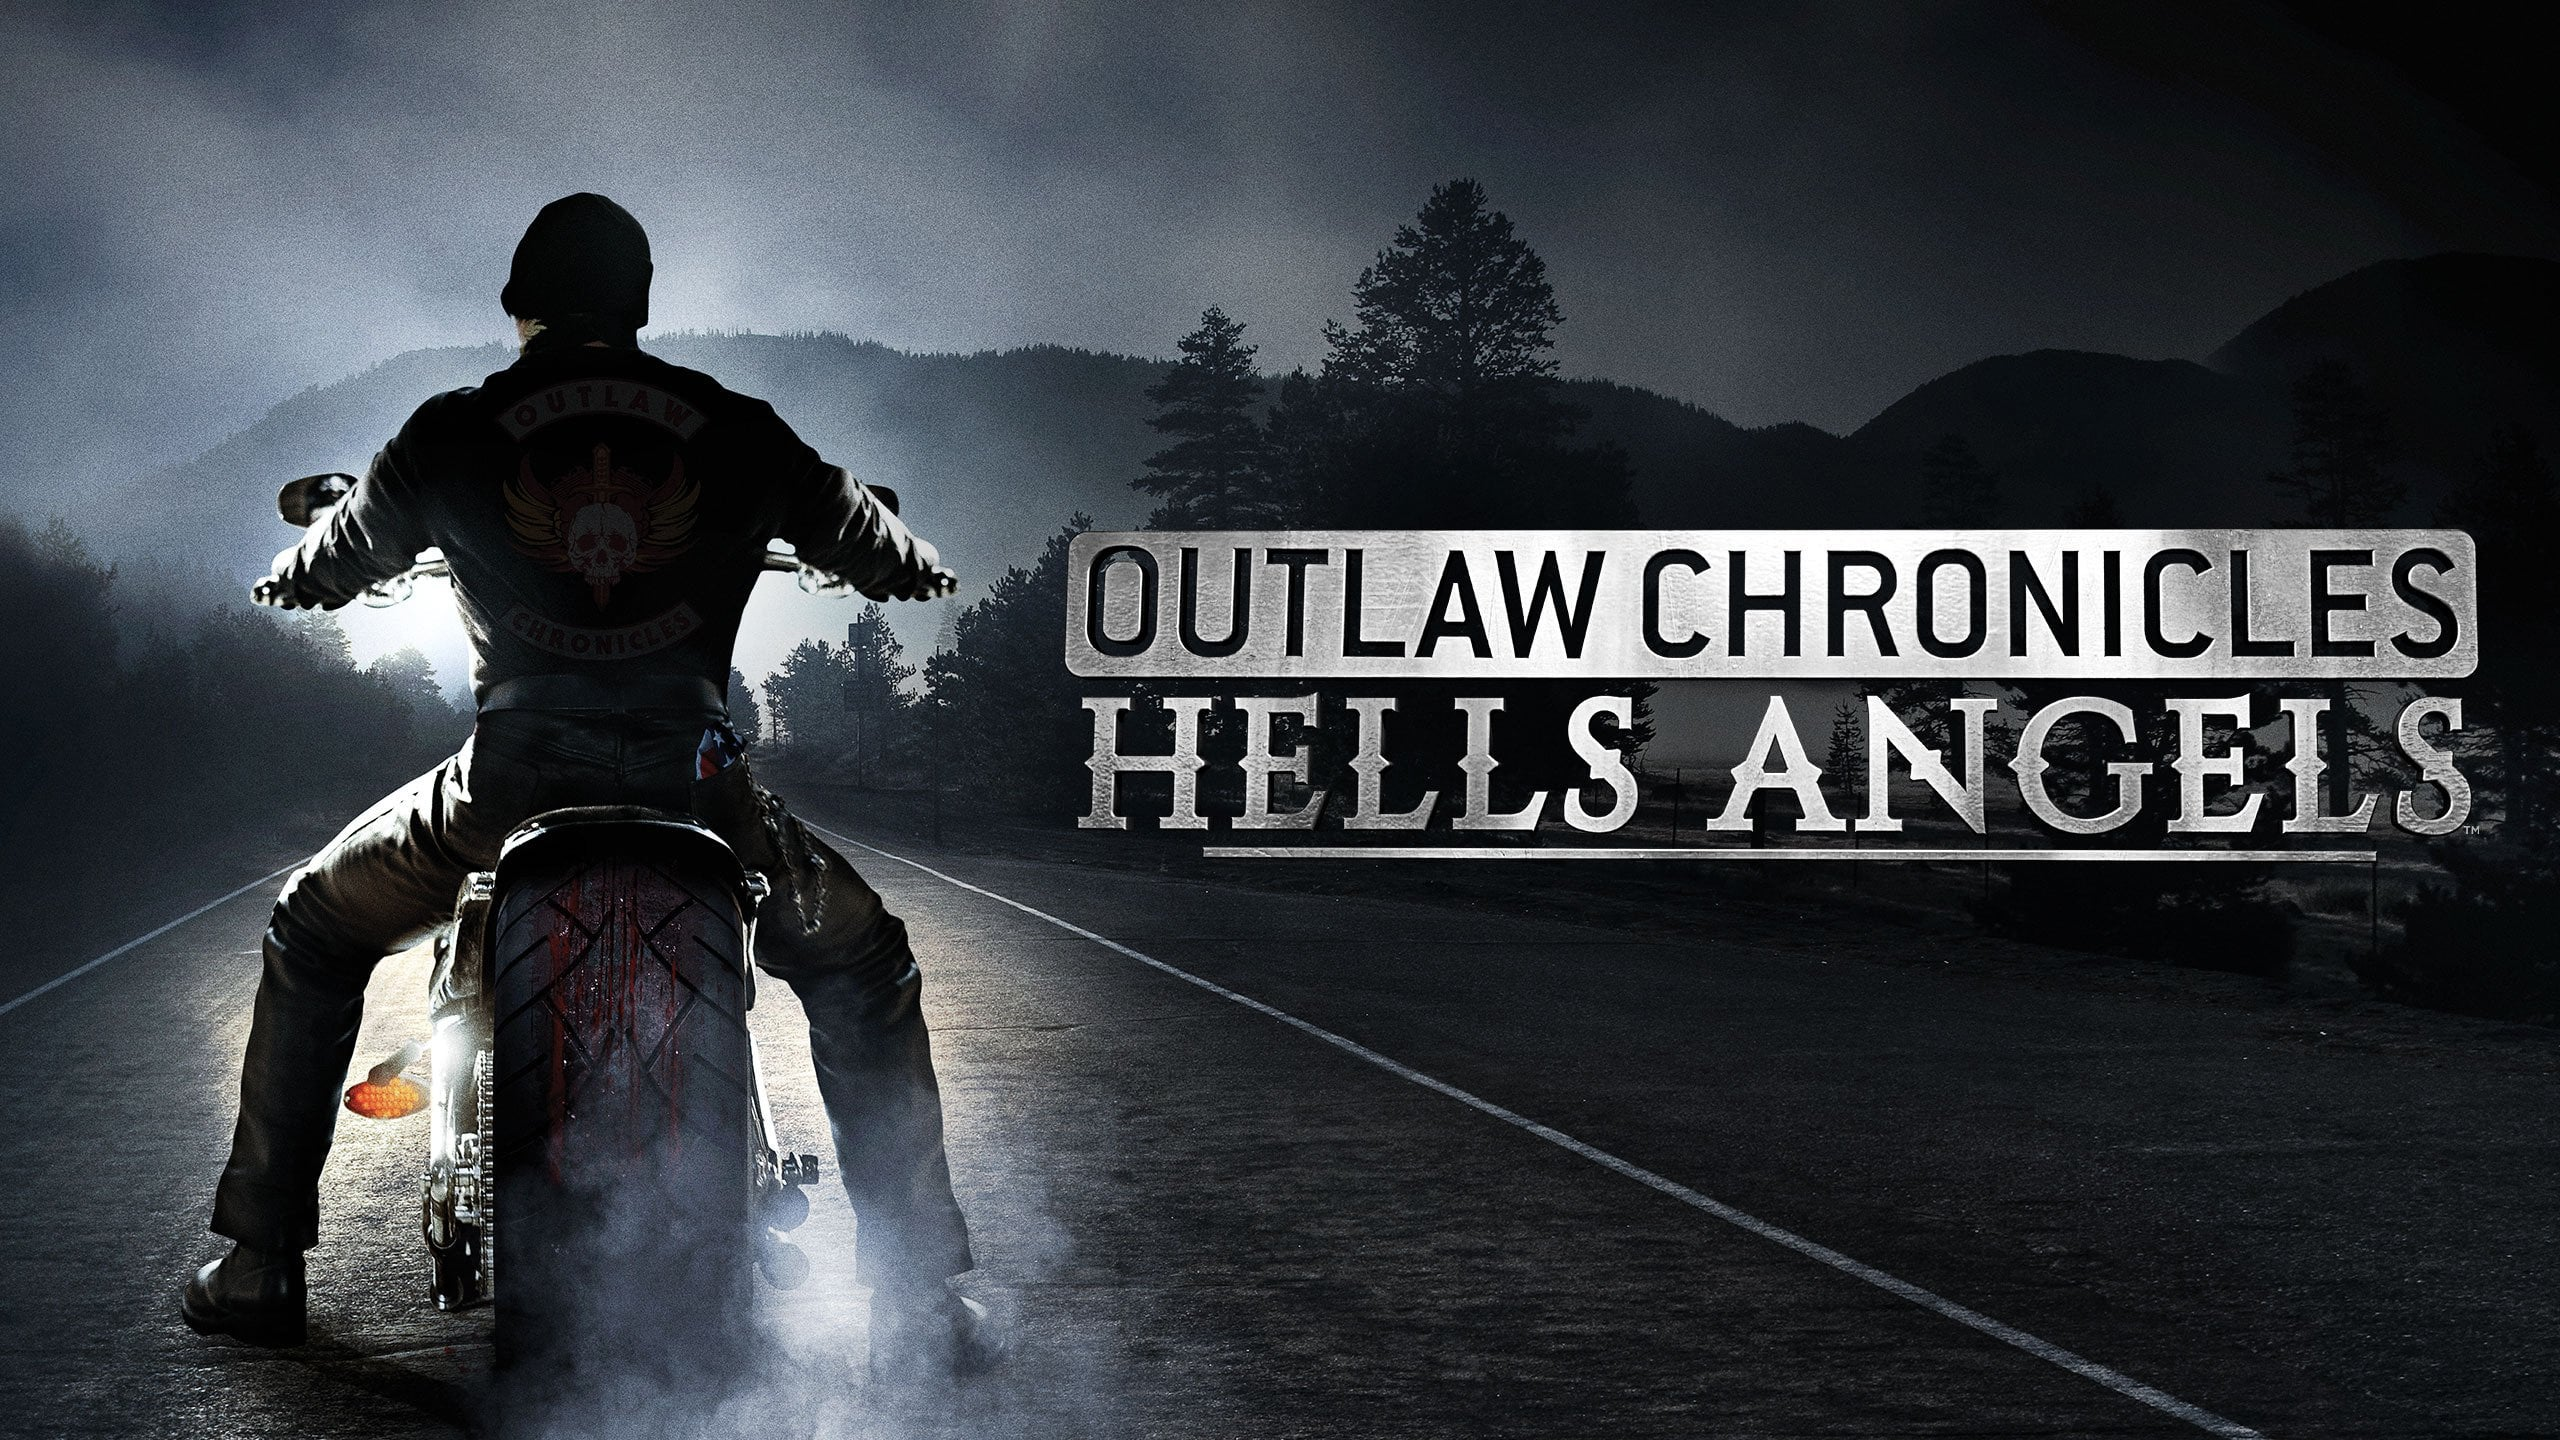 Outlaw Chronicles: Hells Angels season  date